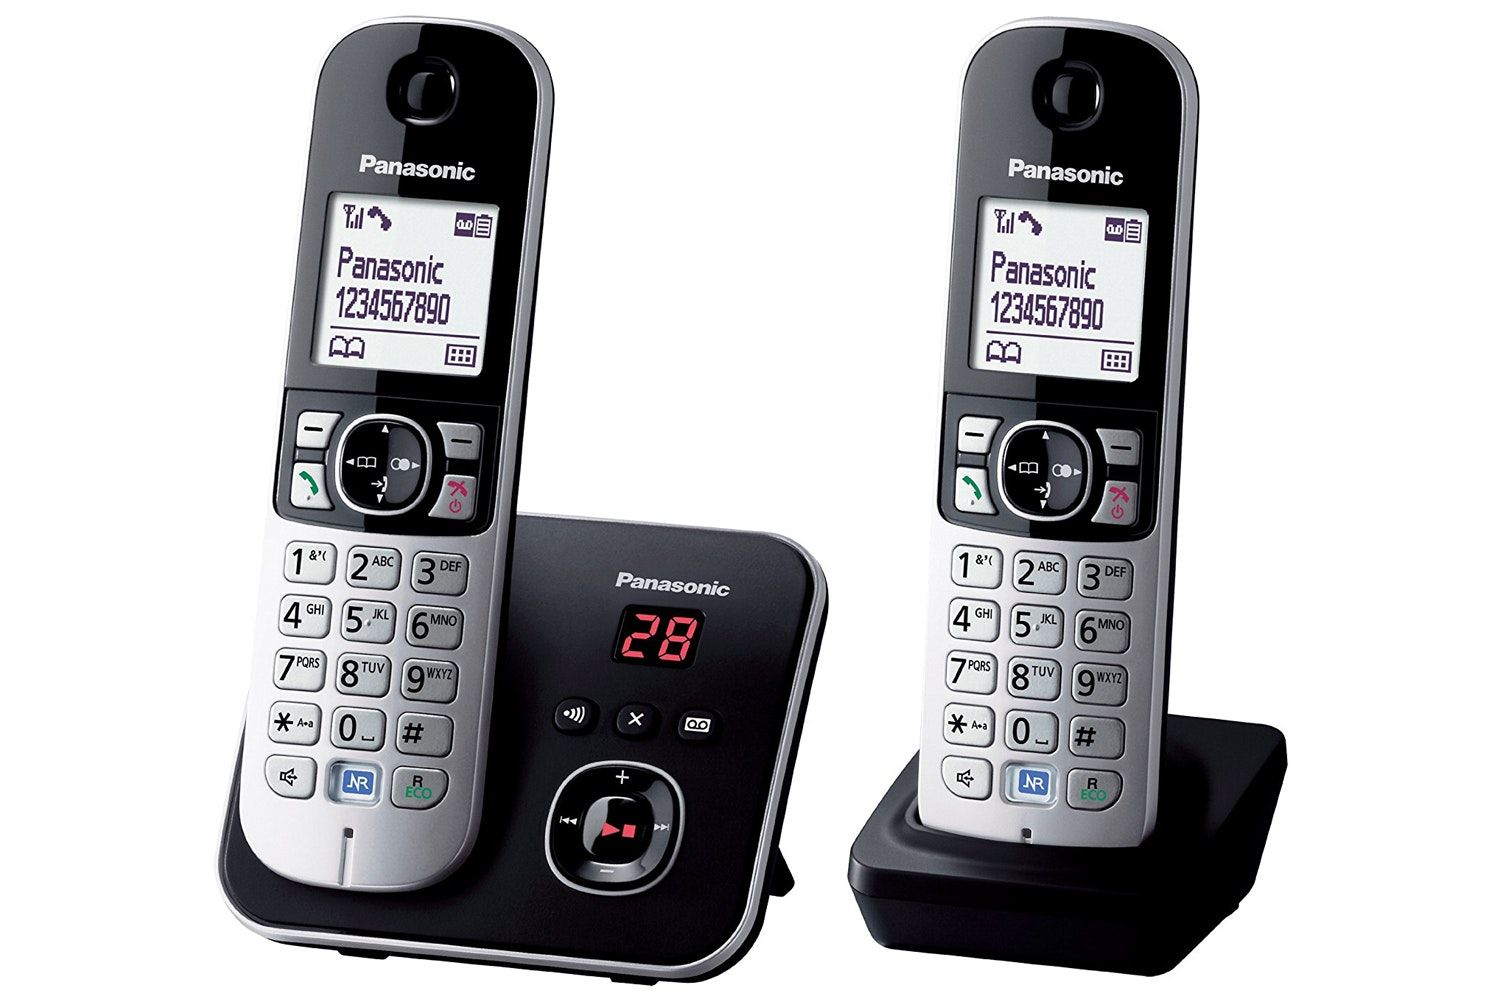 Panasonic 6821 DECT Cordless Phone with TAM | Twin Pack